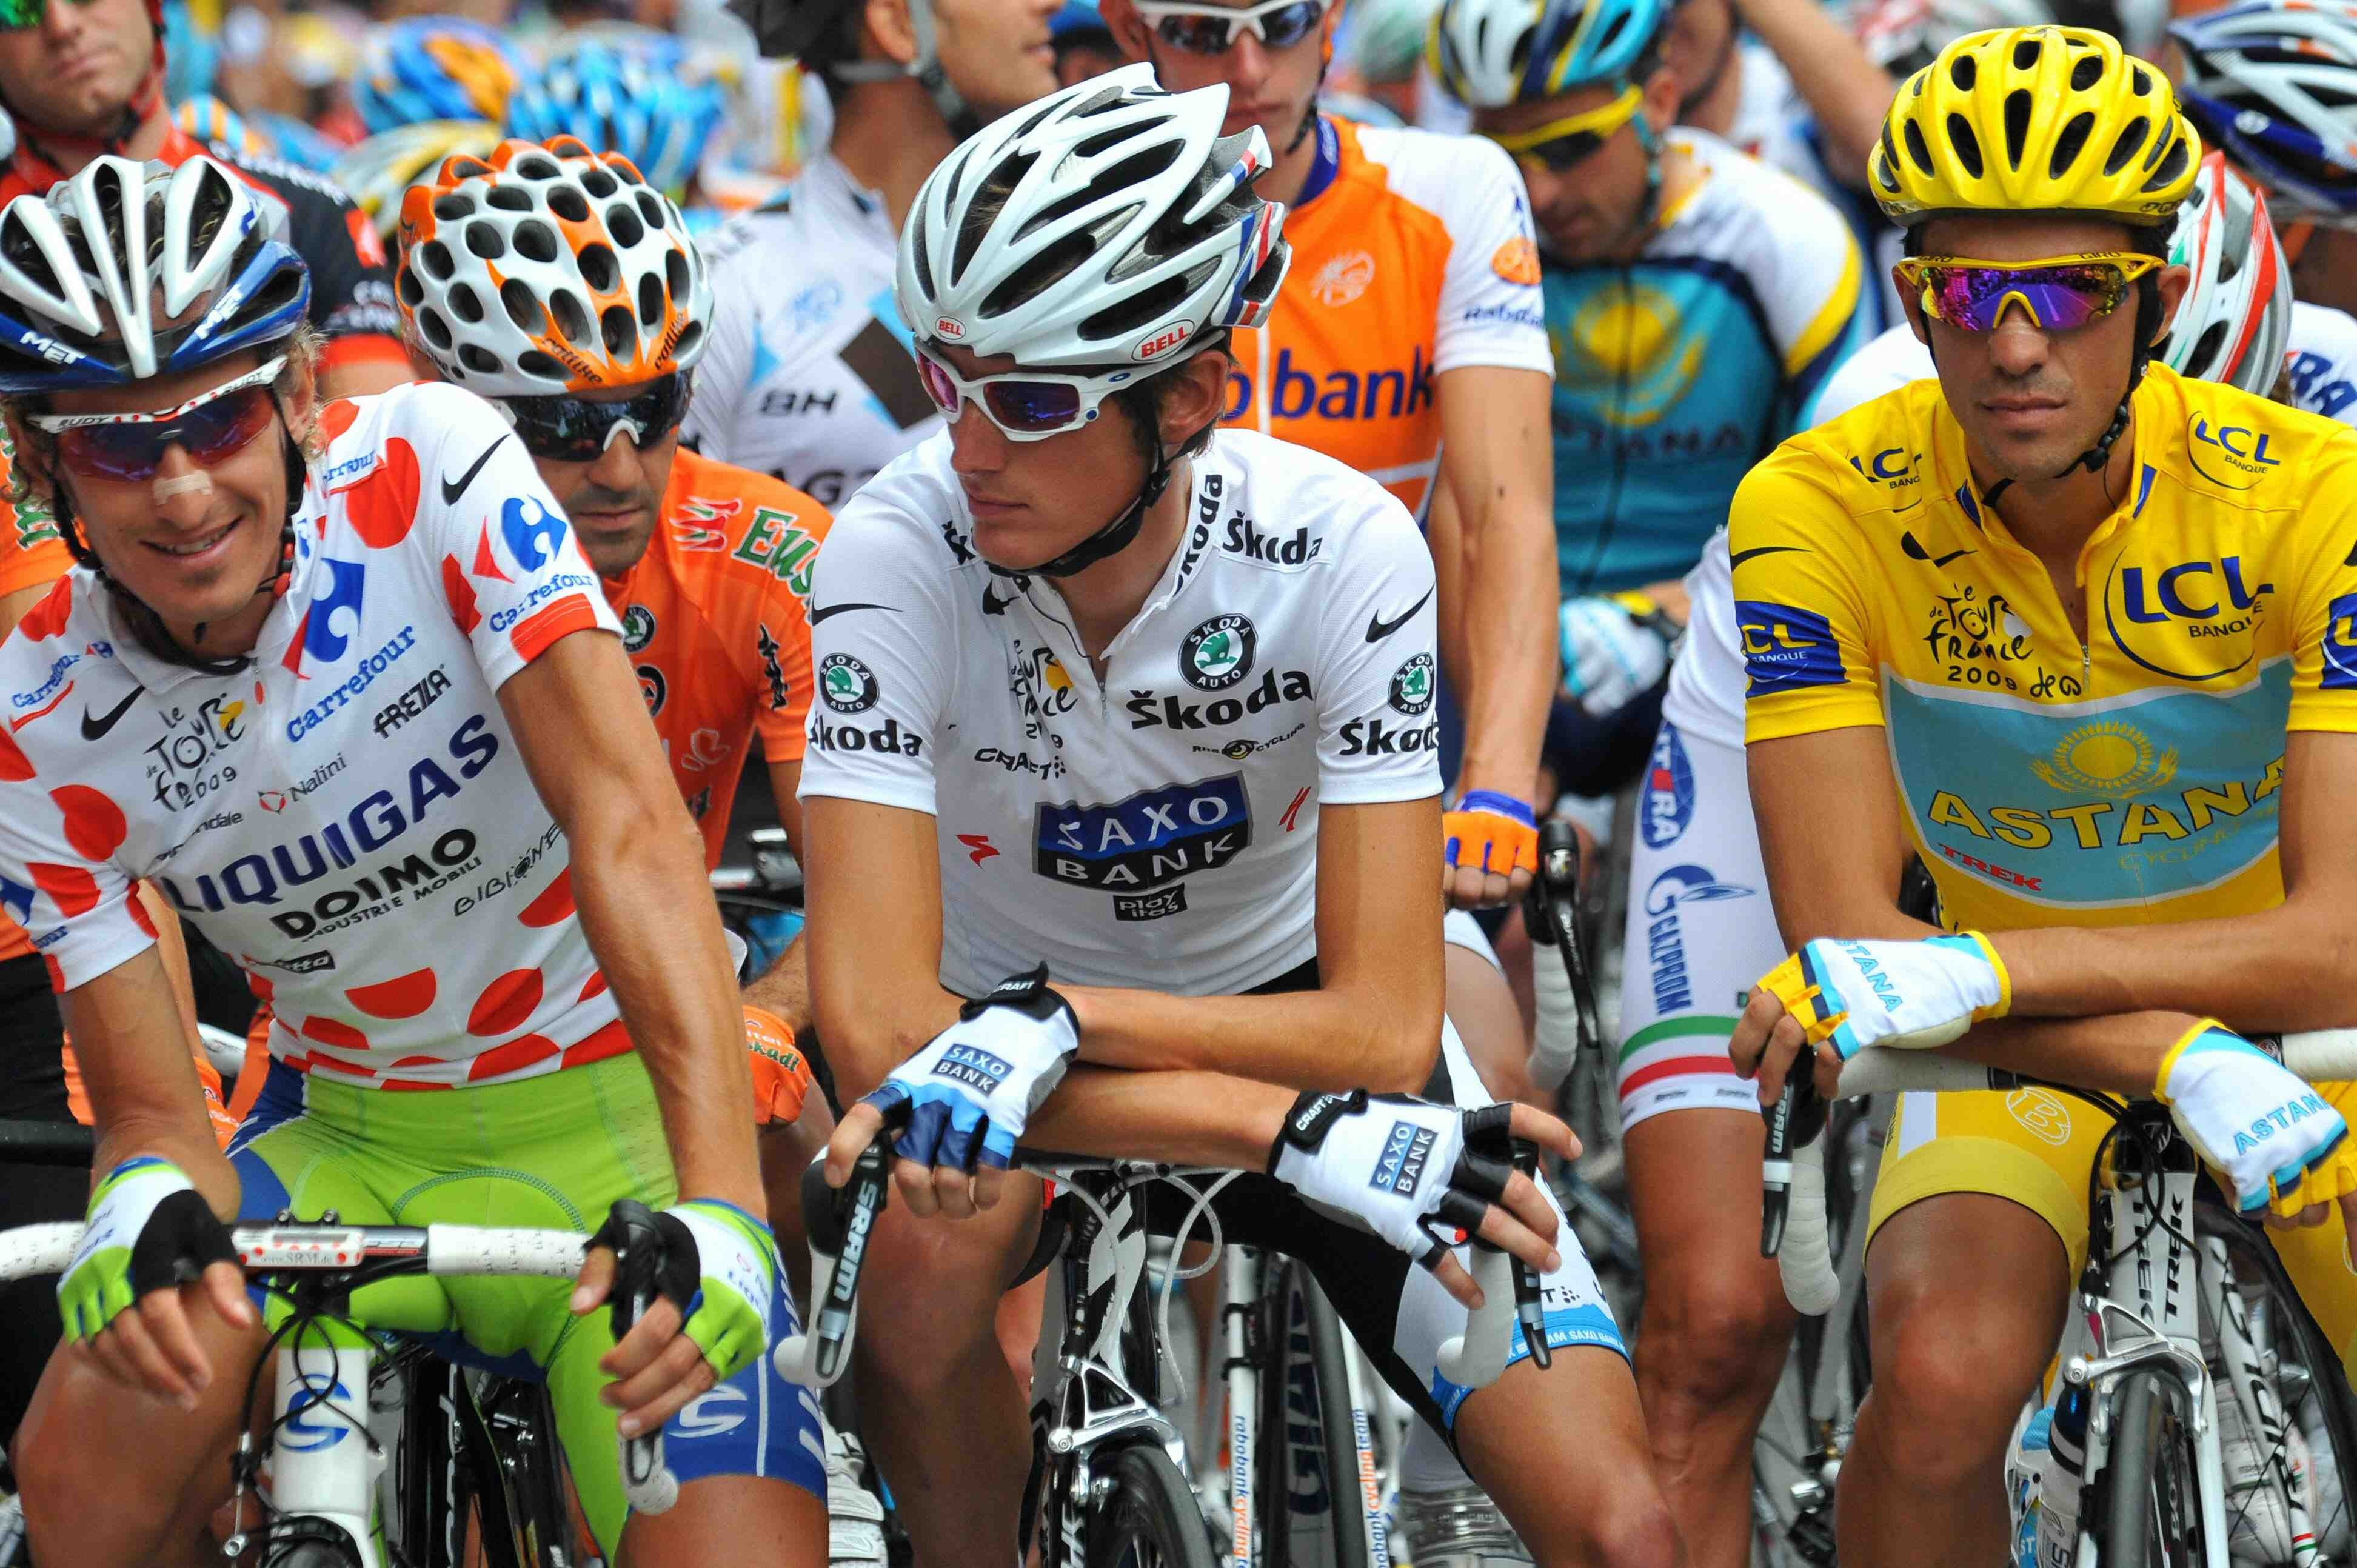 Franco Pellizotti lines up next to best young racer Andy Schleck and yellow jersey Alberot Contador before the start of stage 16.